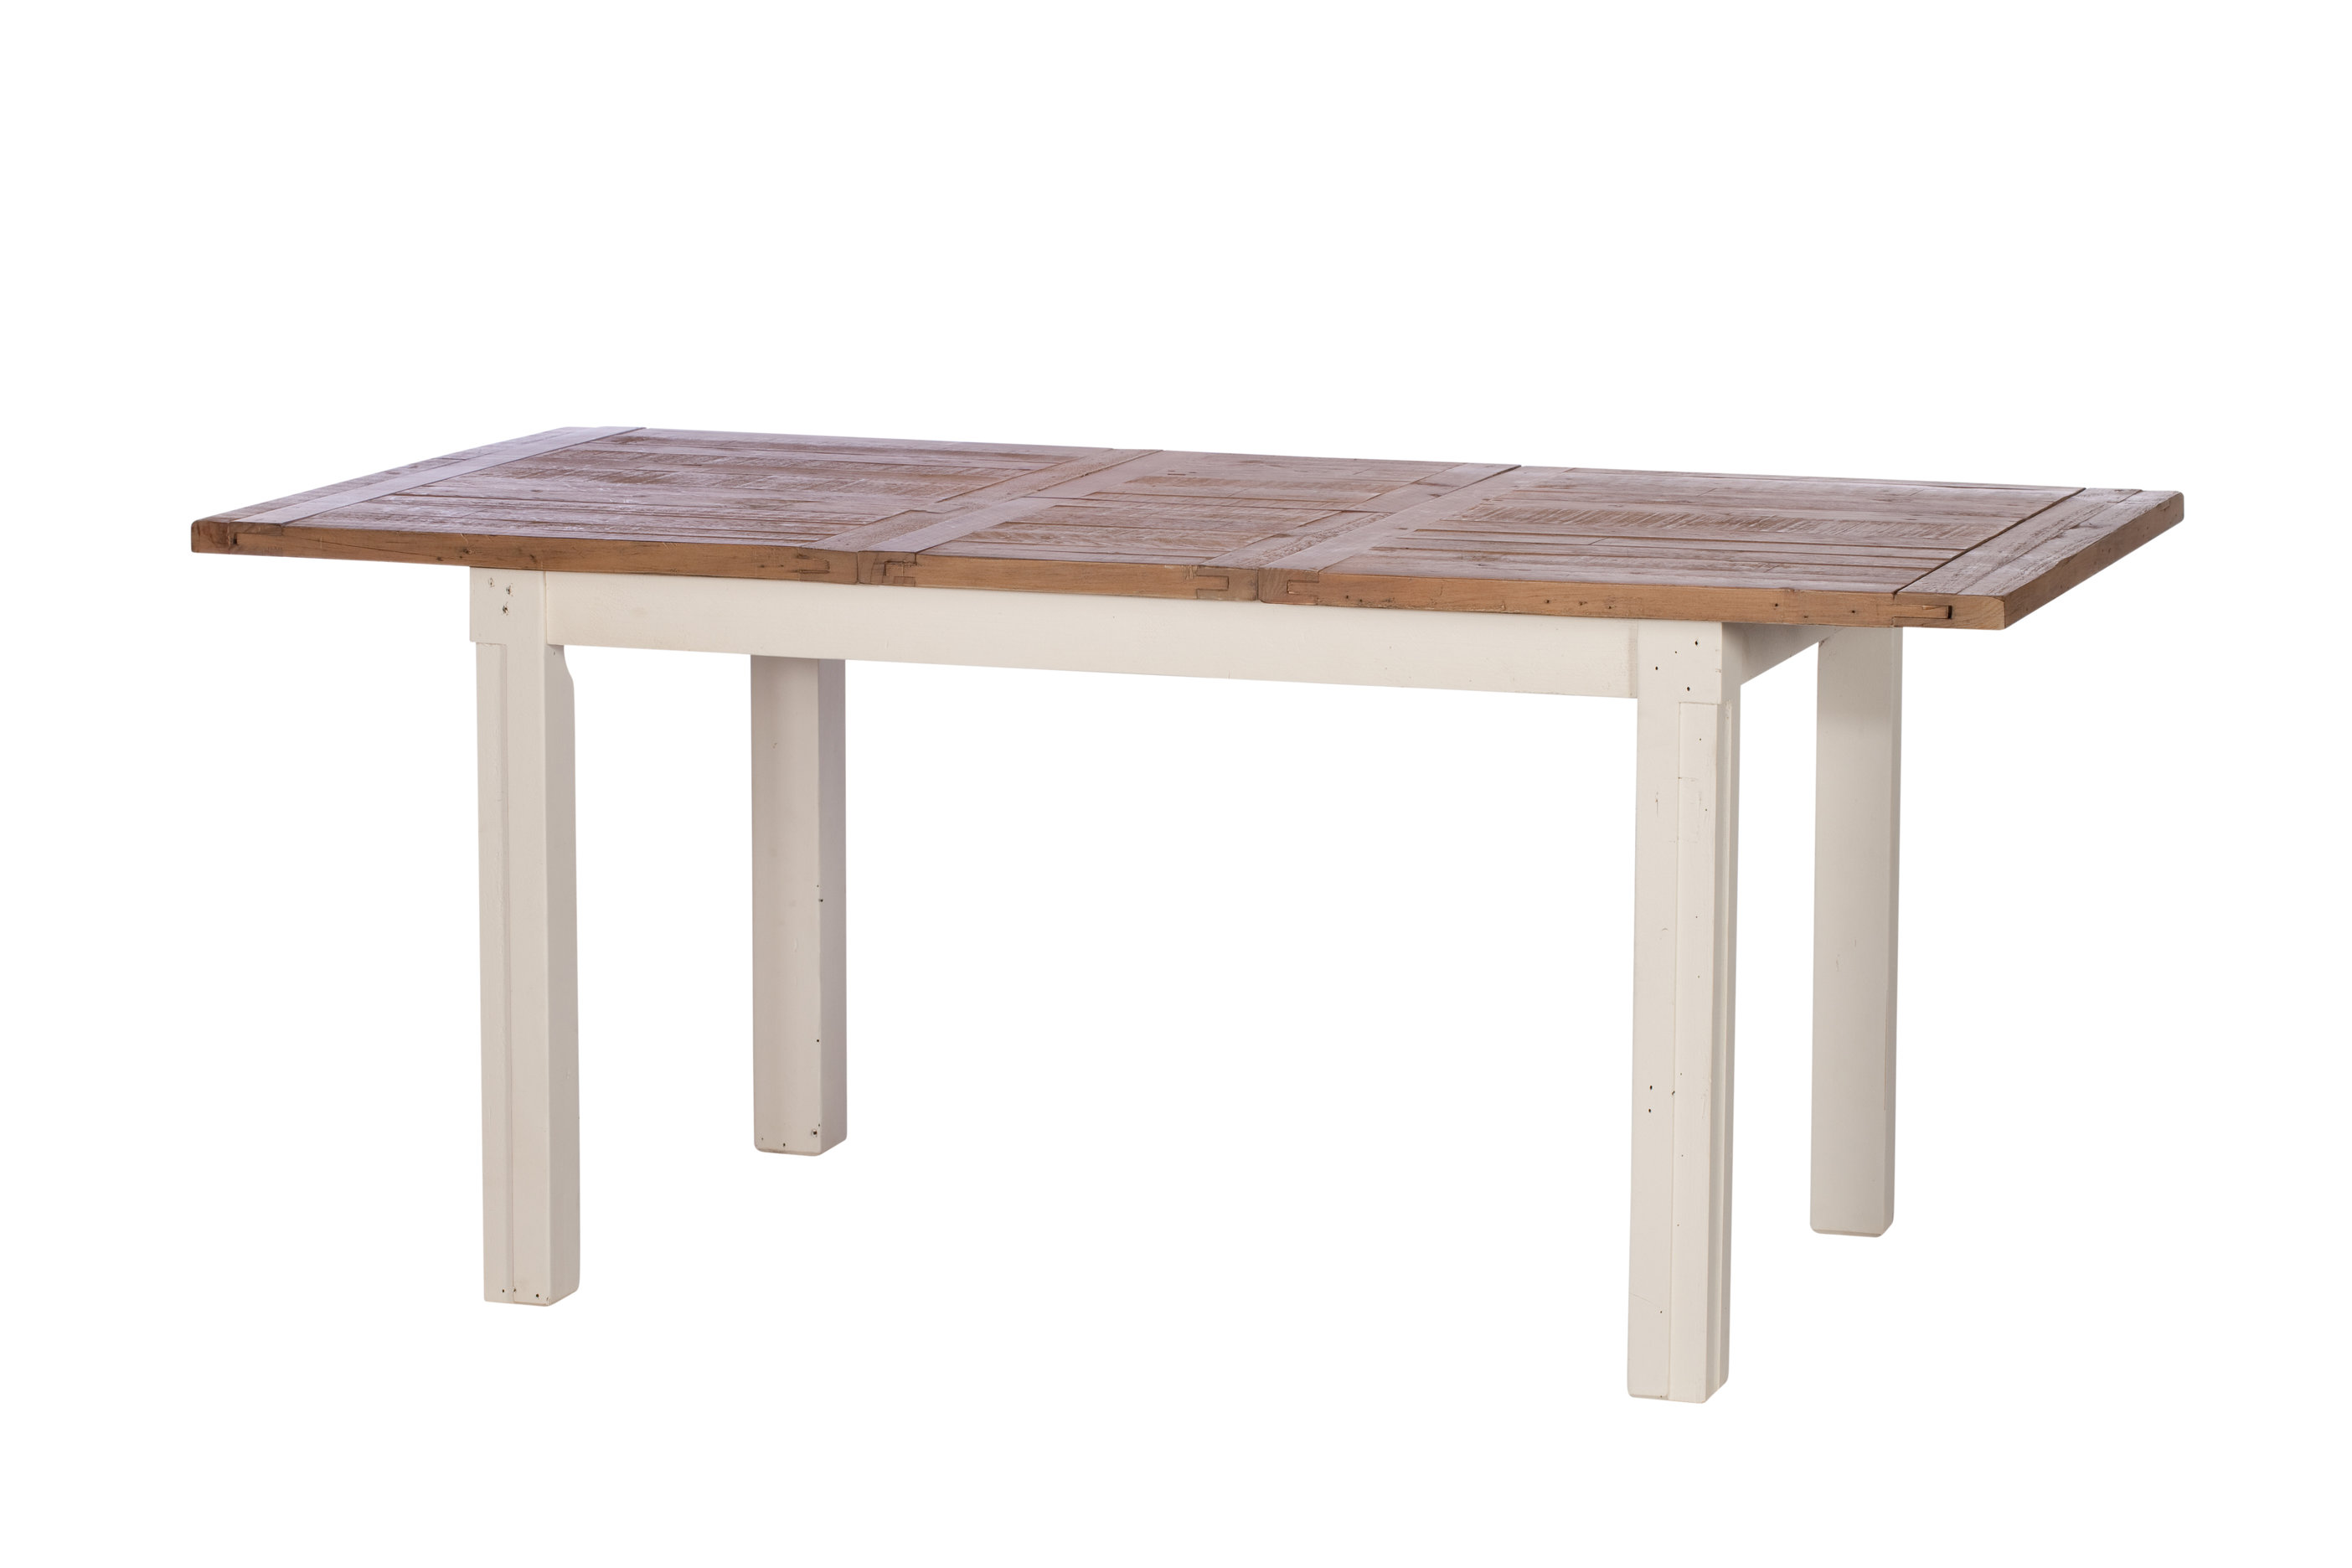 Solid reclaimed wood extending dining table 5 yrs warranty bournemouth poole - Extending wood dining table ...